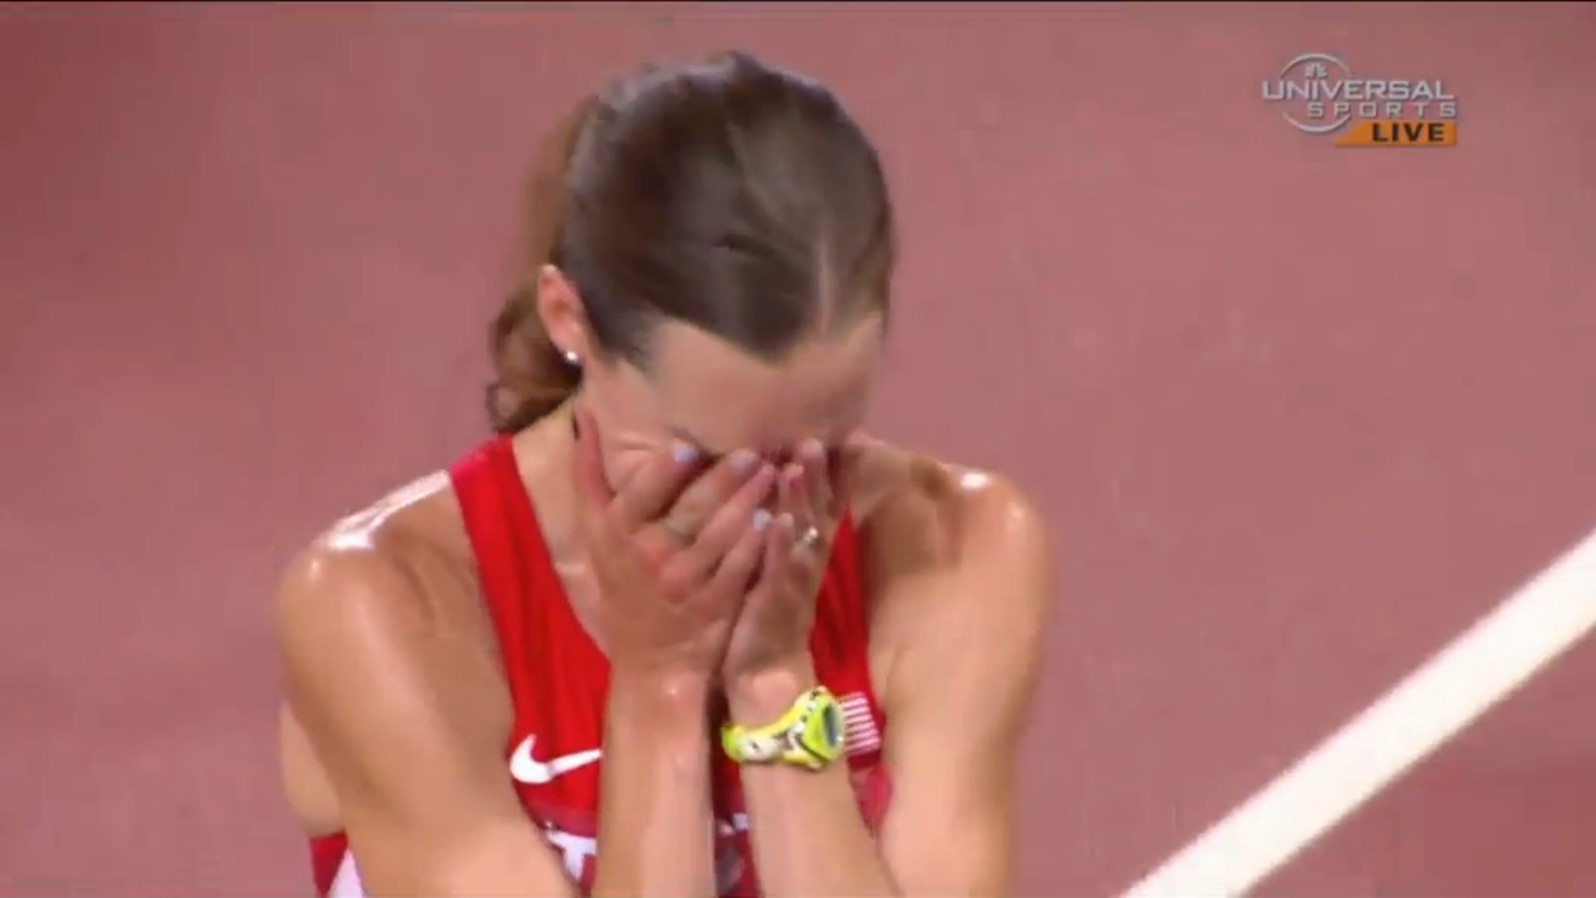 American Runner Learns Lesson: Never Celebrate Anything, Ever